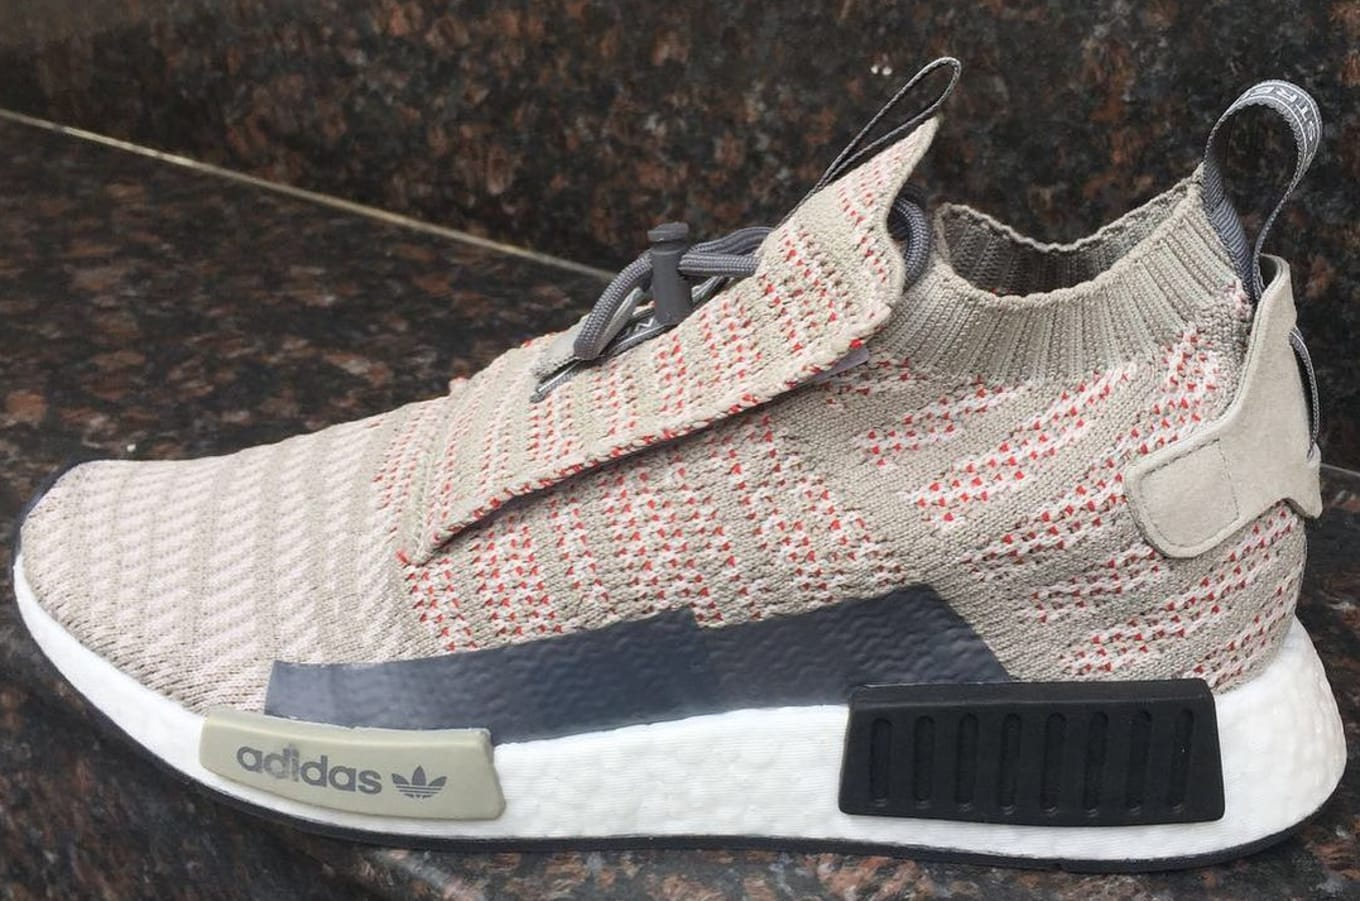 59c6261b88f Adidas May Add a New NMD Model Next Year